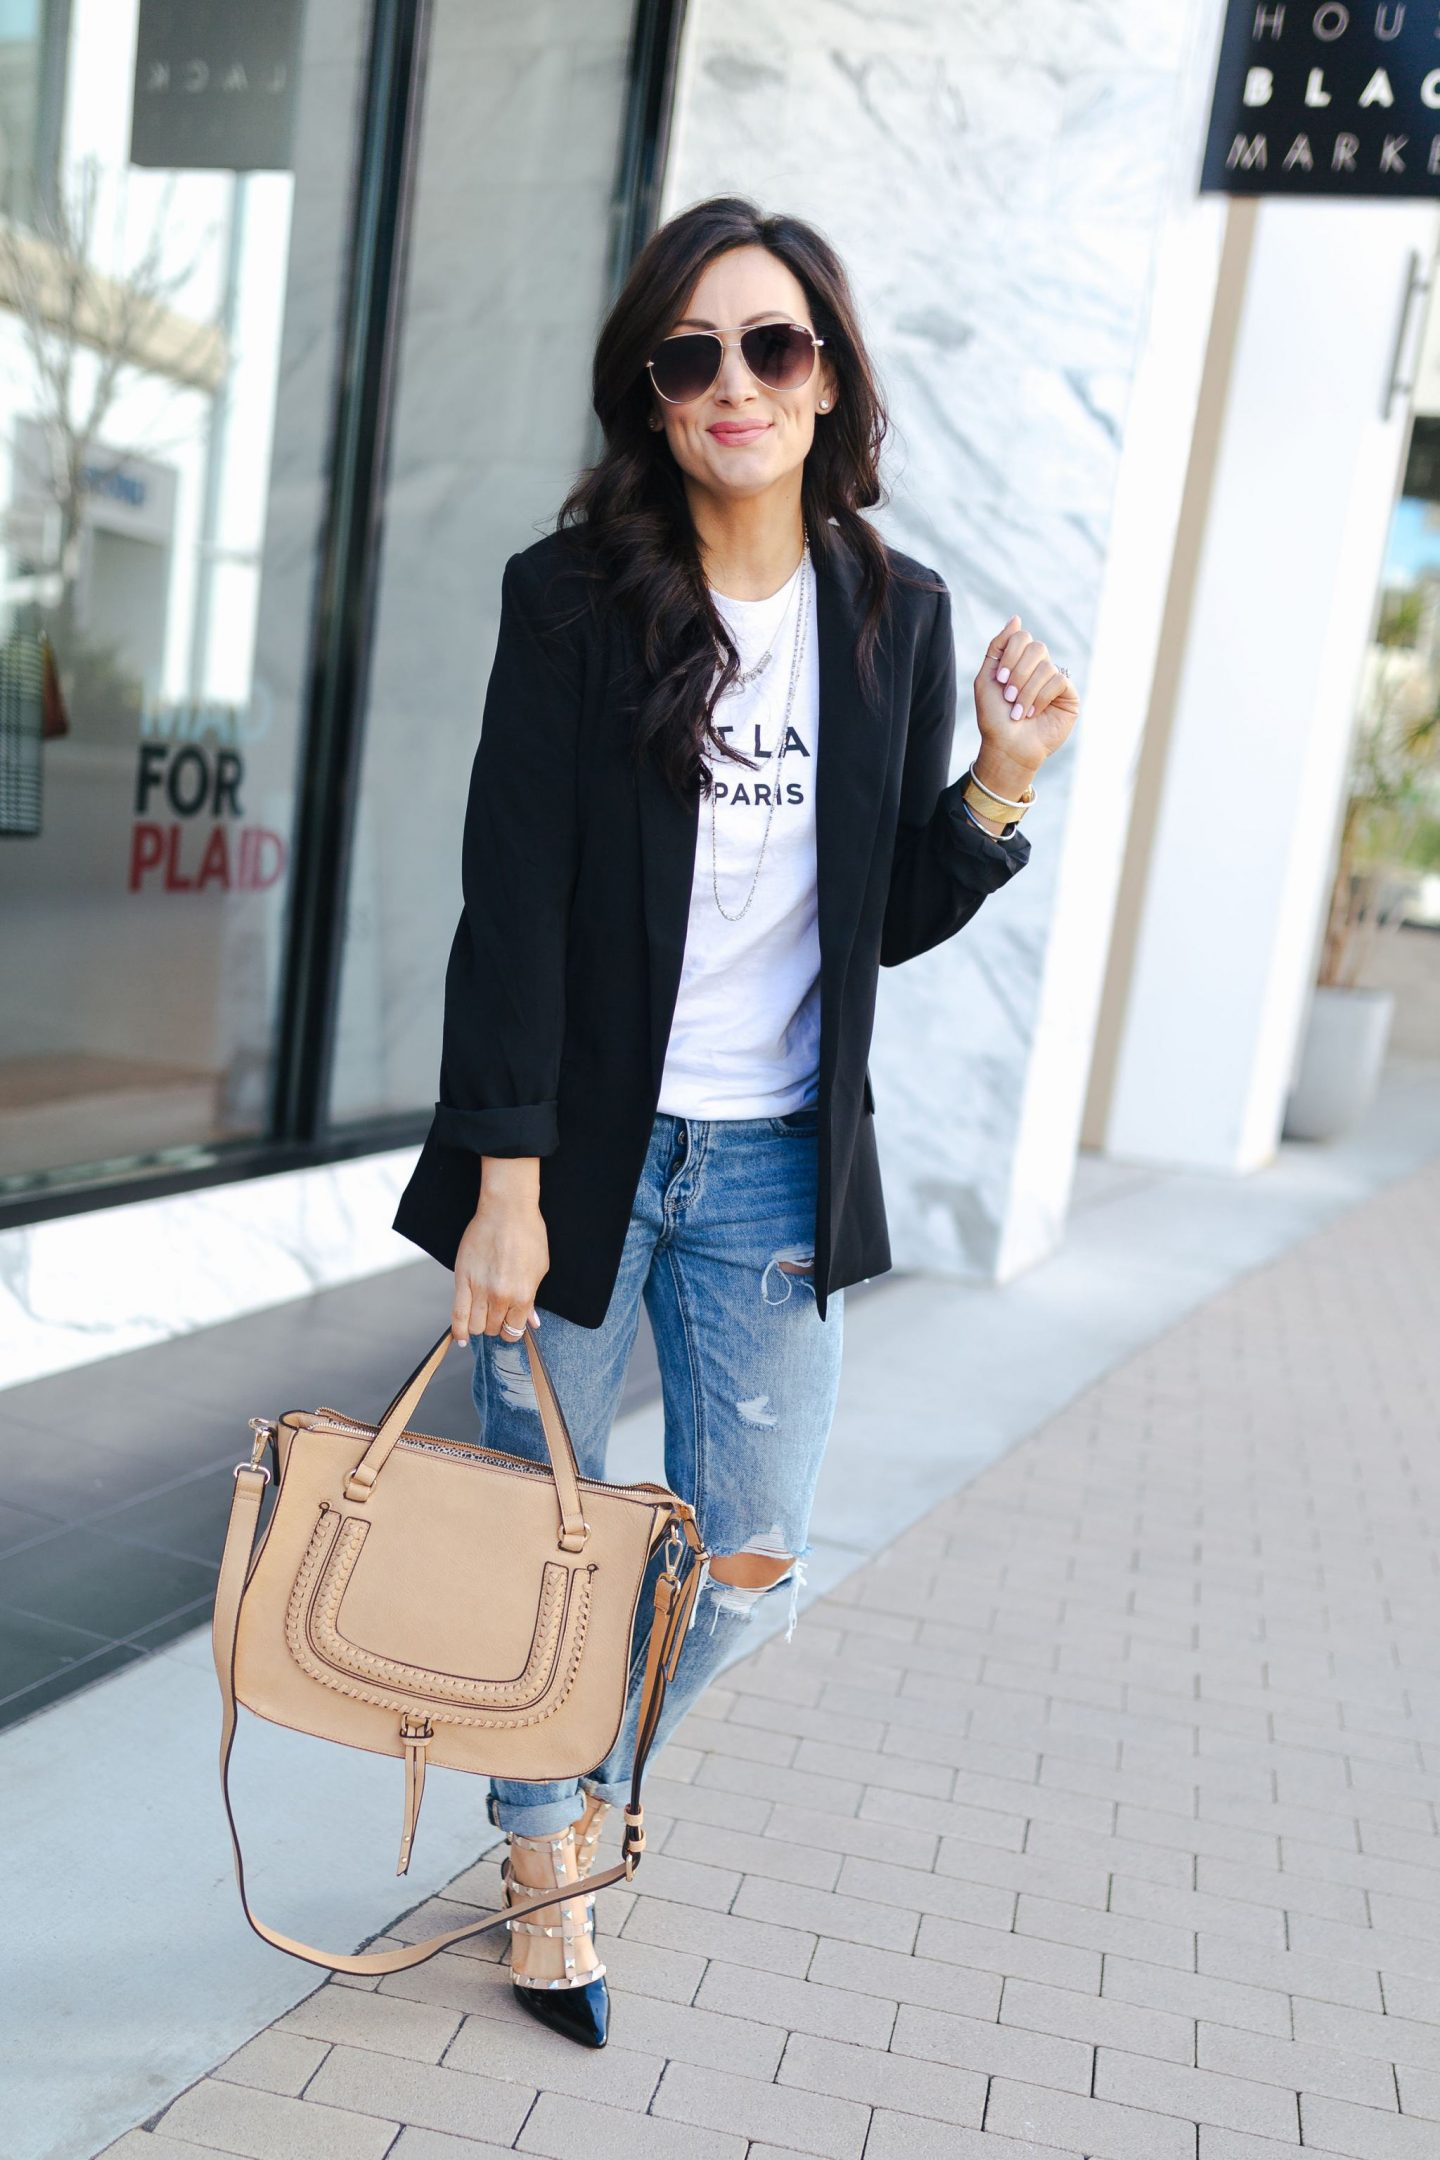 ed75b22d668b Look #1: A simple tee and jeans dressed up with a studded heel and a blazer.